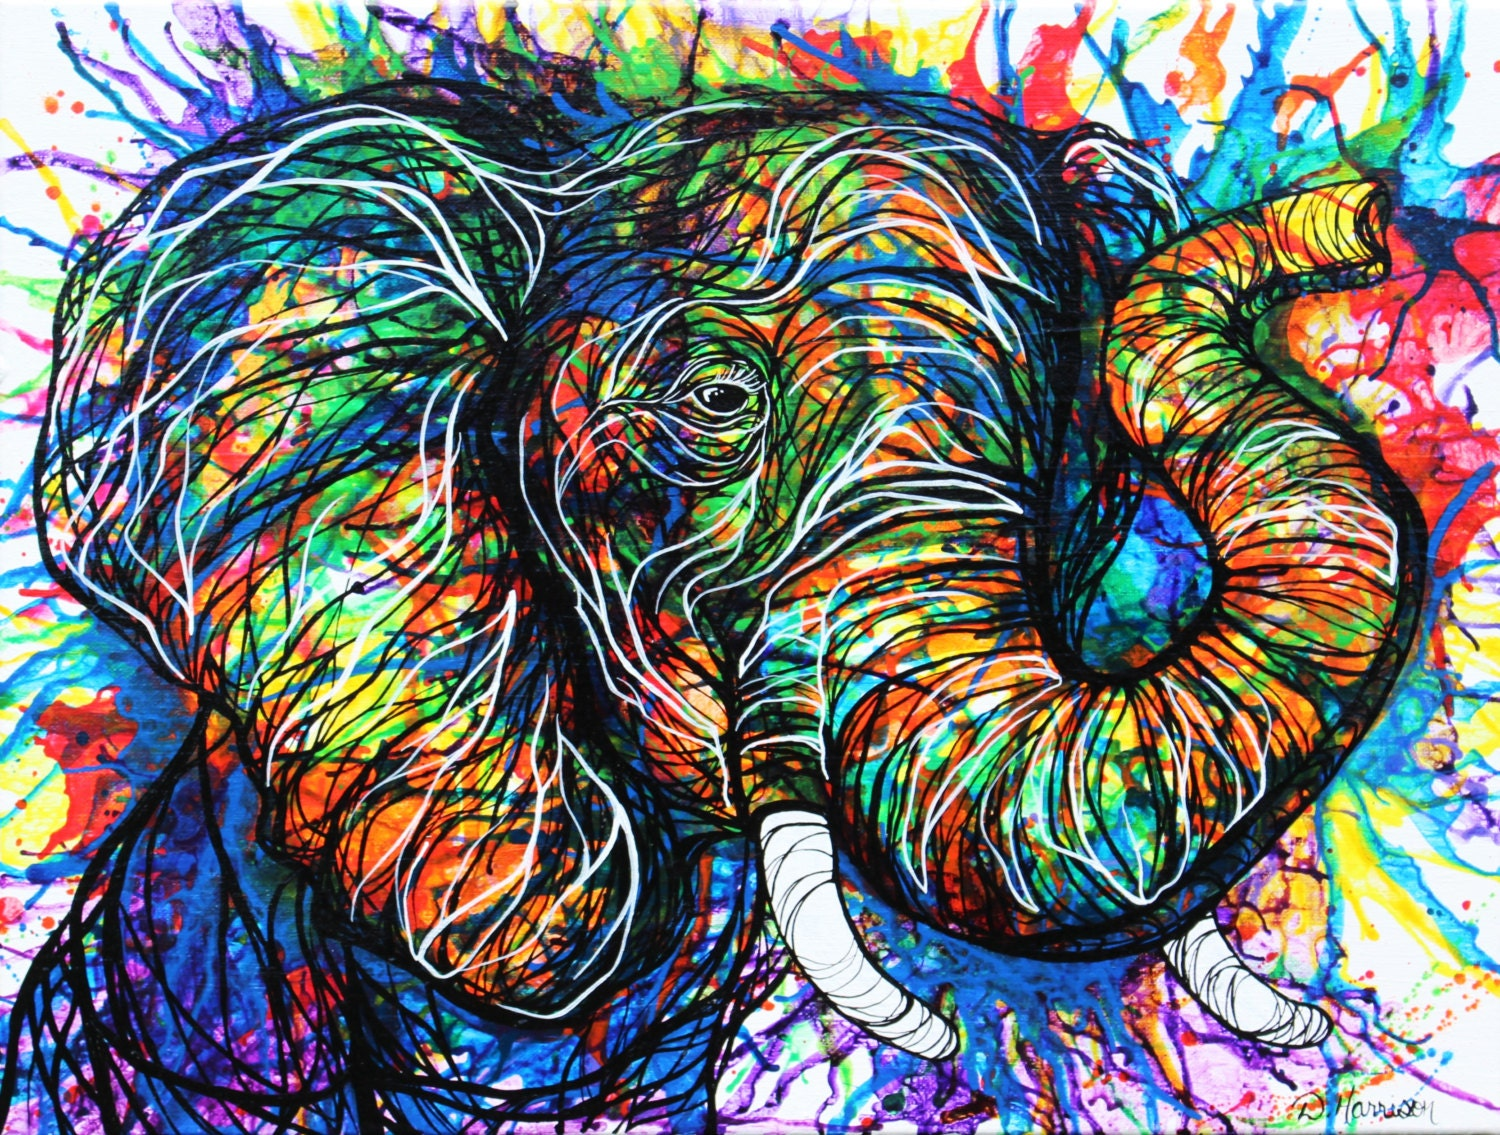 Abstract Colorful Elephant Art Original by DHarrisonPaintings